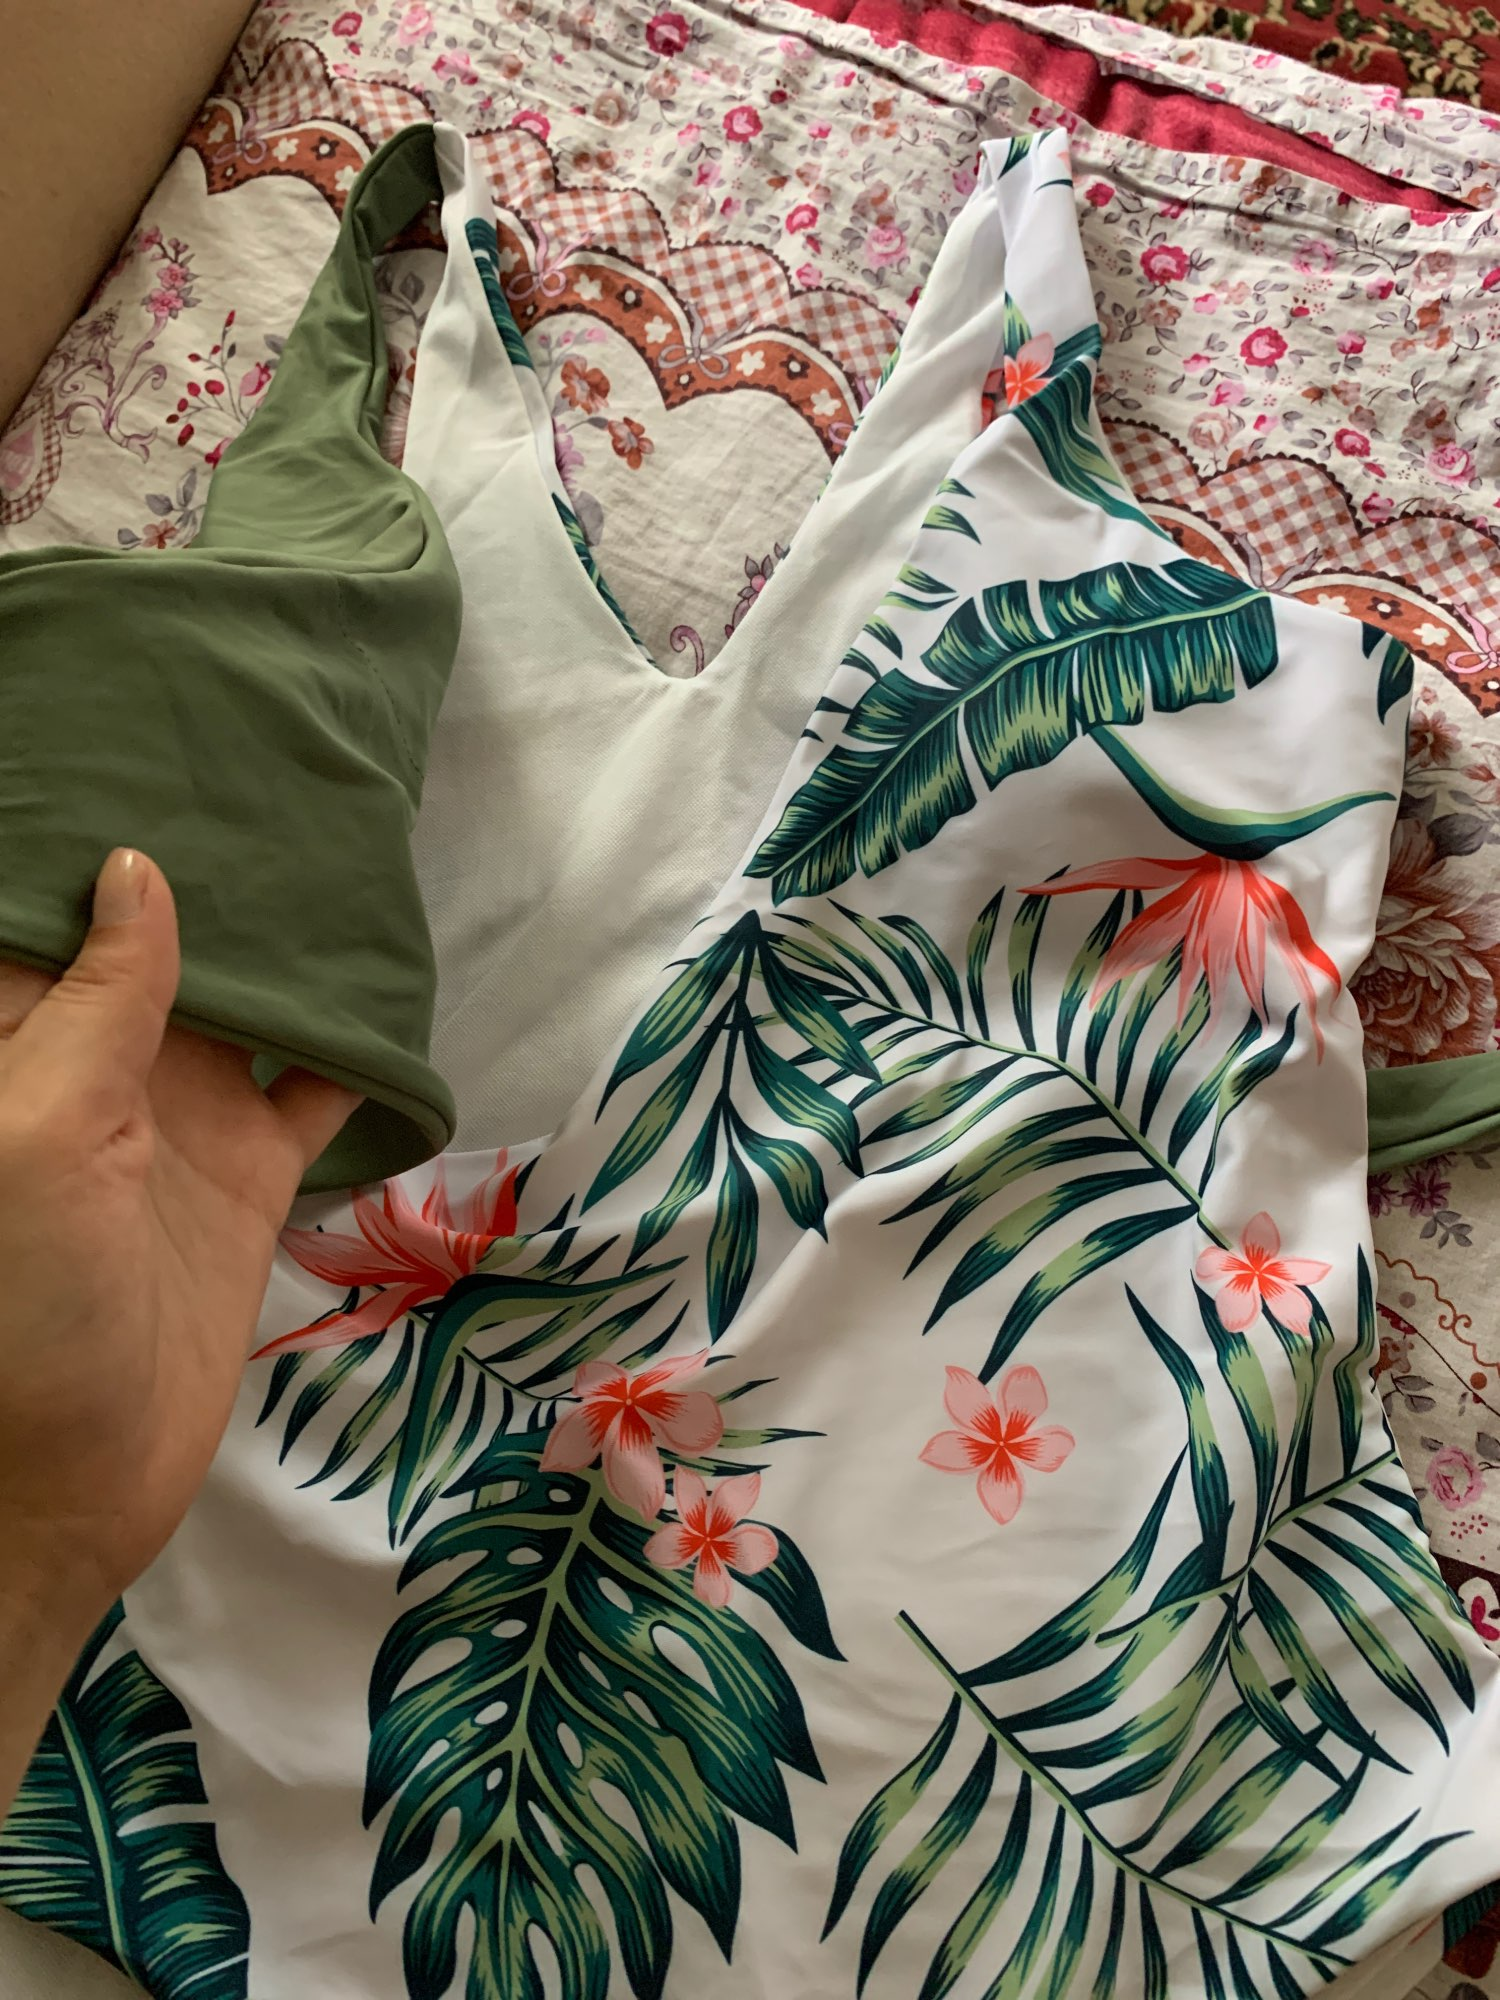 One-Piece Floral Patterned Women's Swimsuit photo review